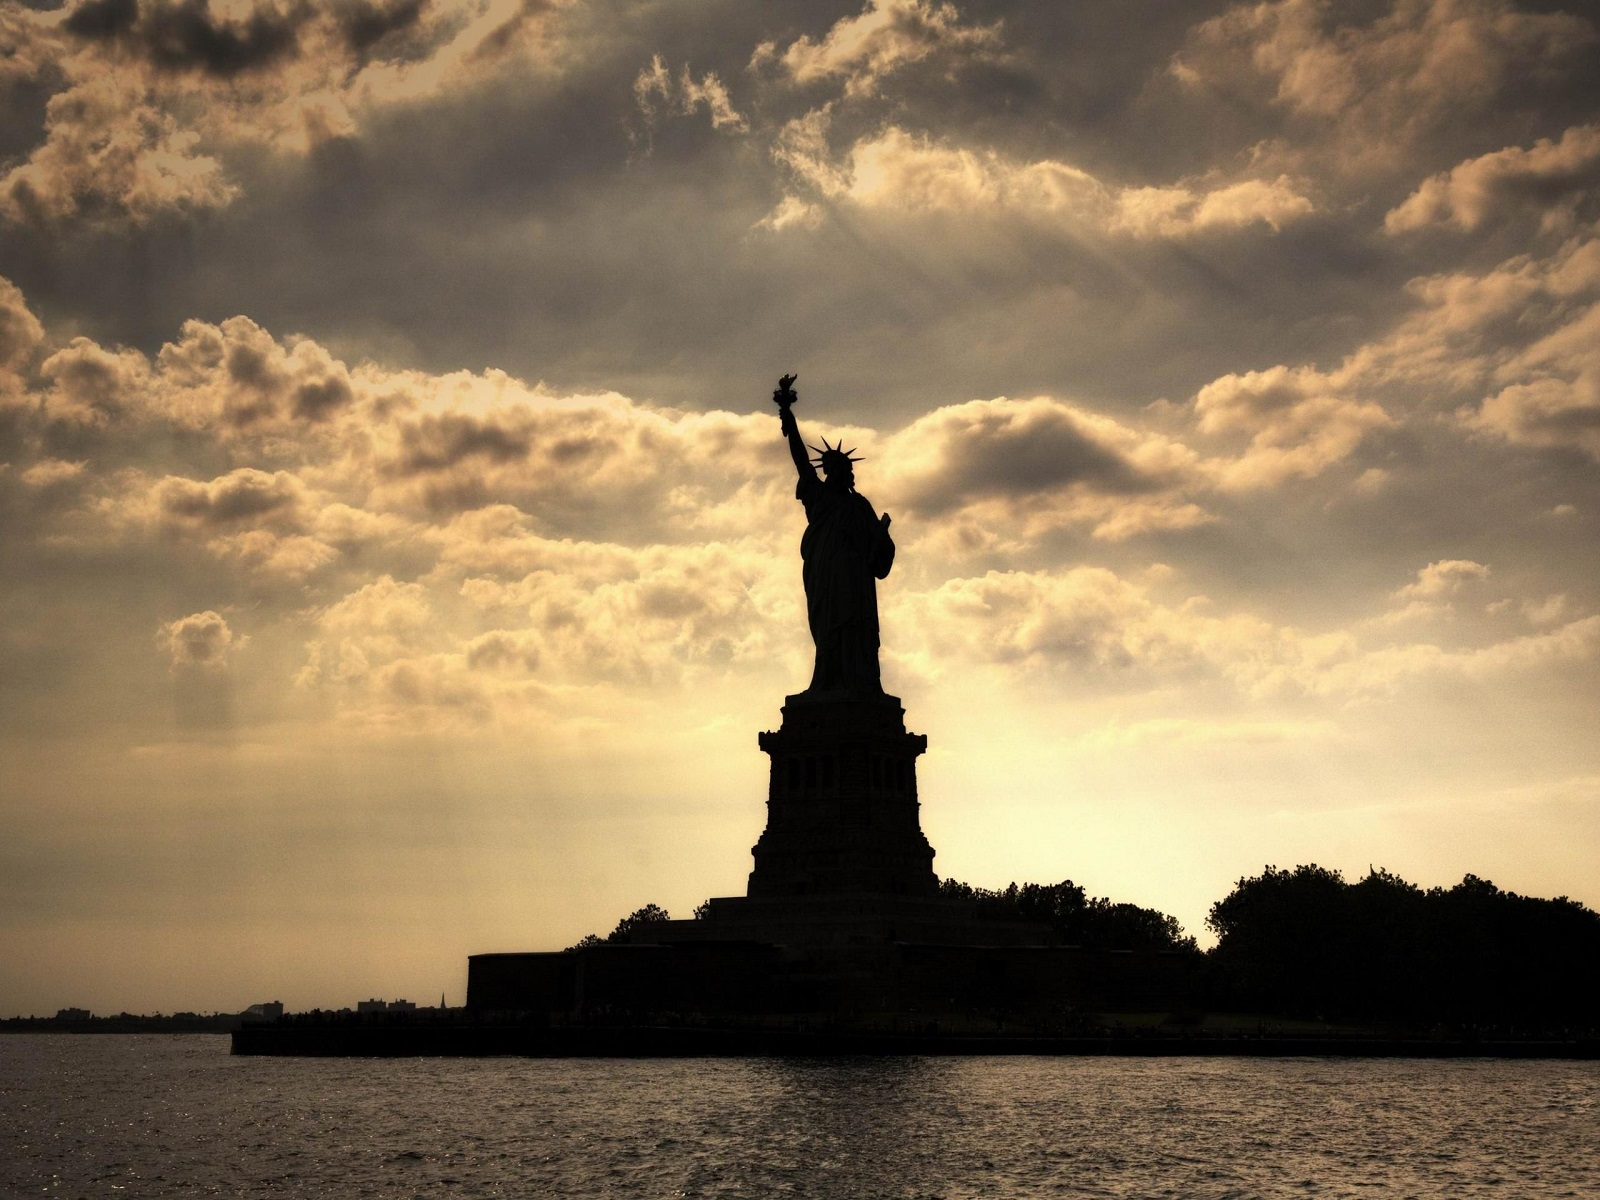 city-statue-statue-of-liberty-new-york-landscape-1600-x